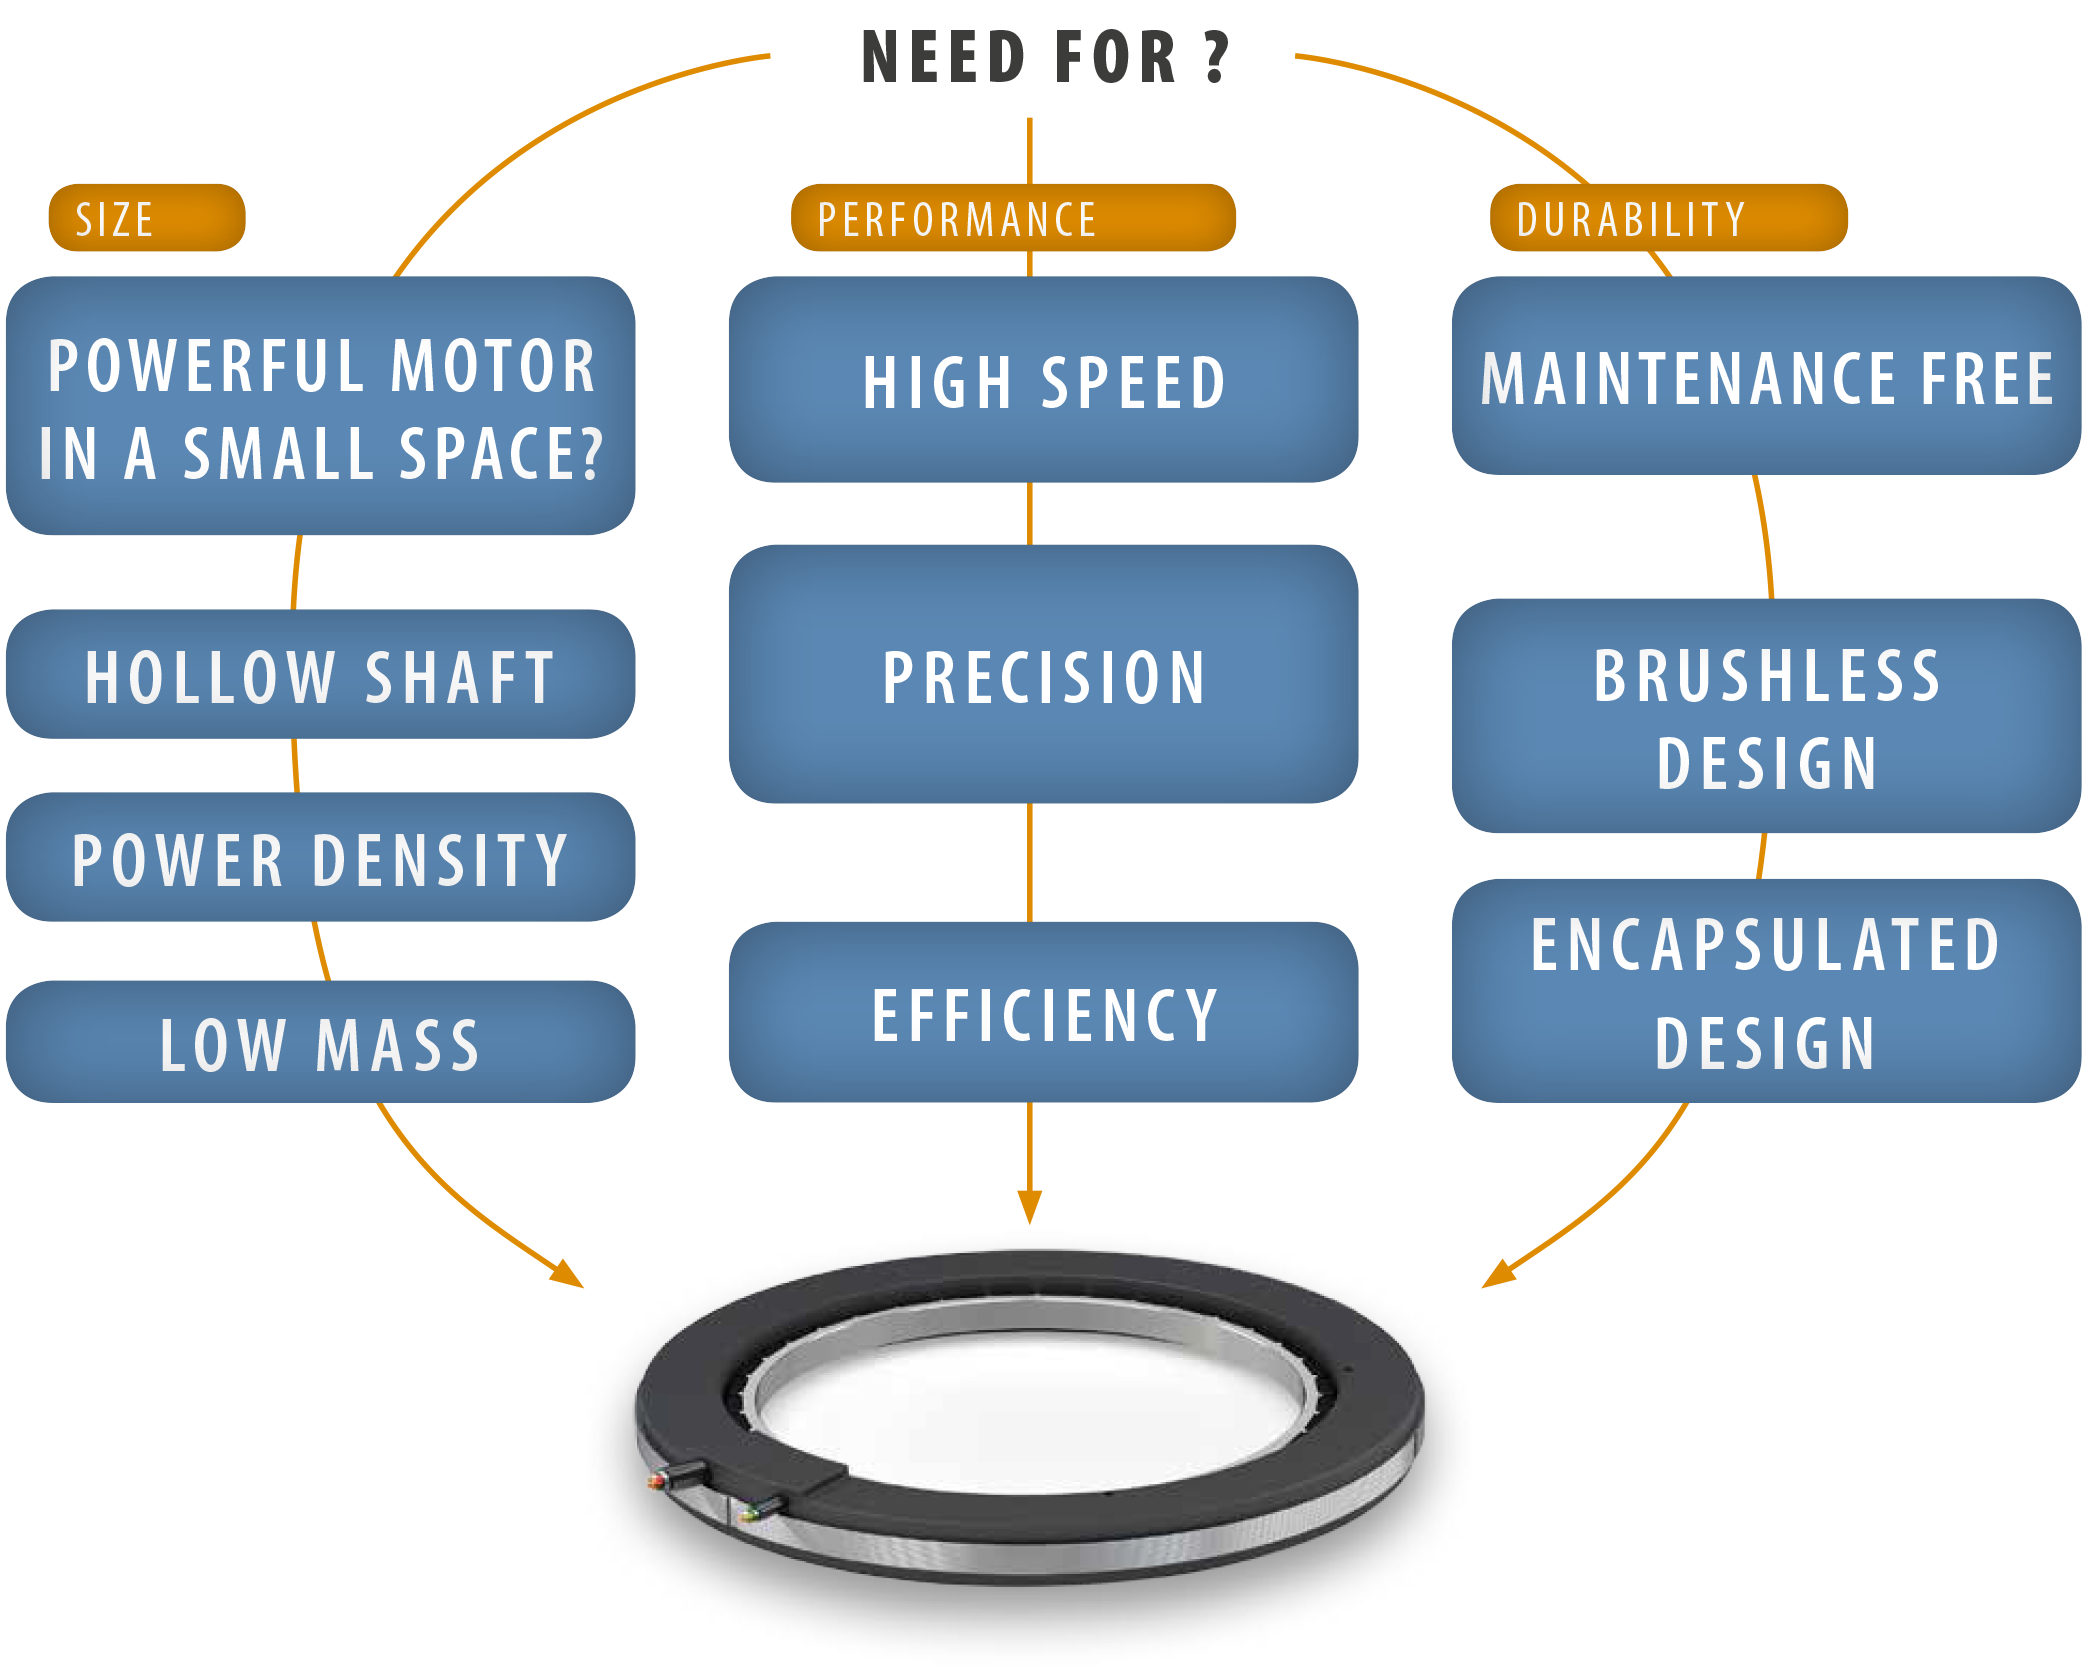 Advantages of a torque motor